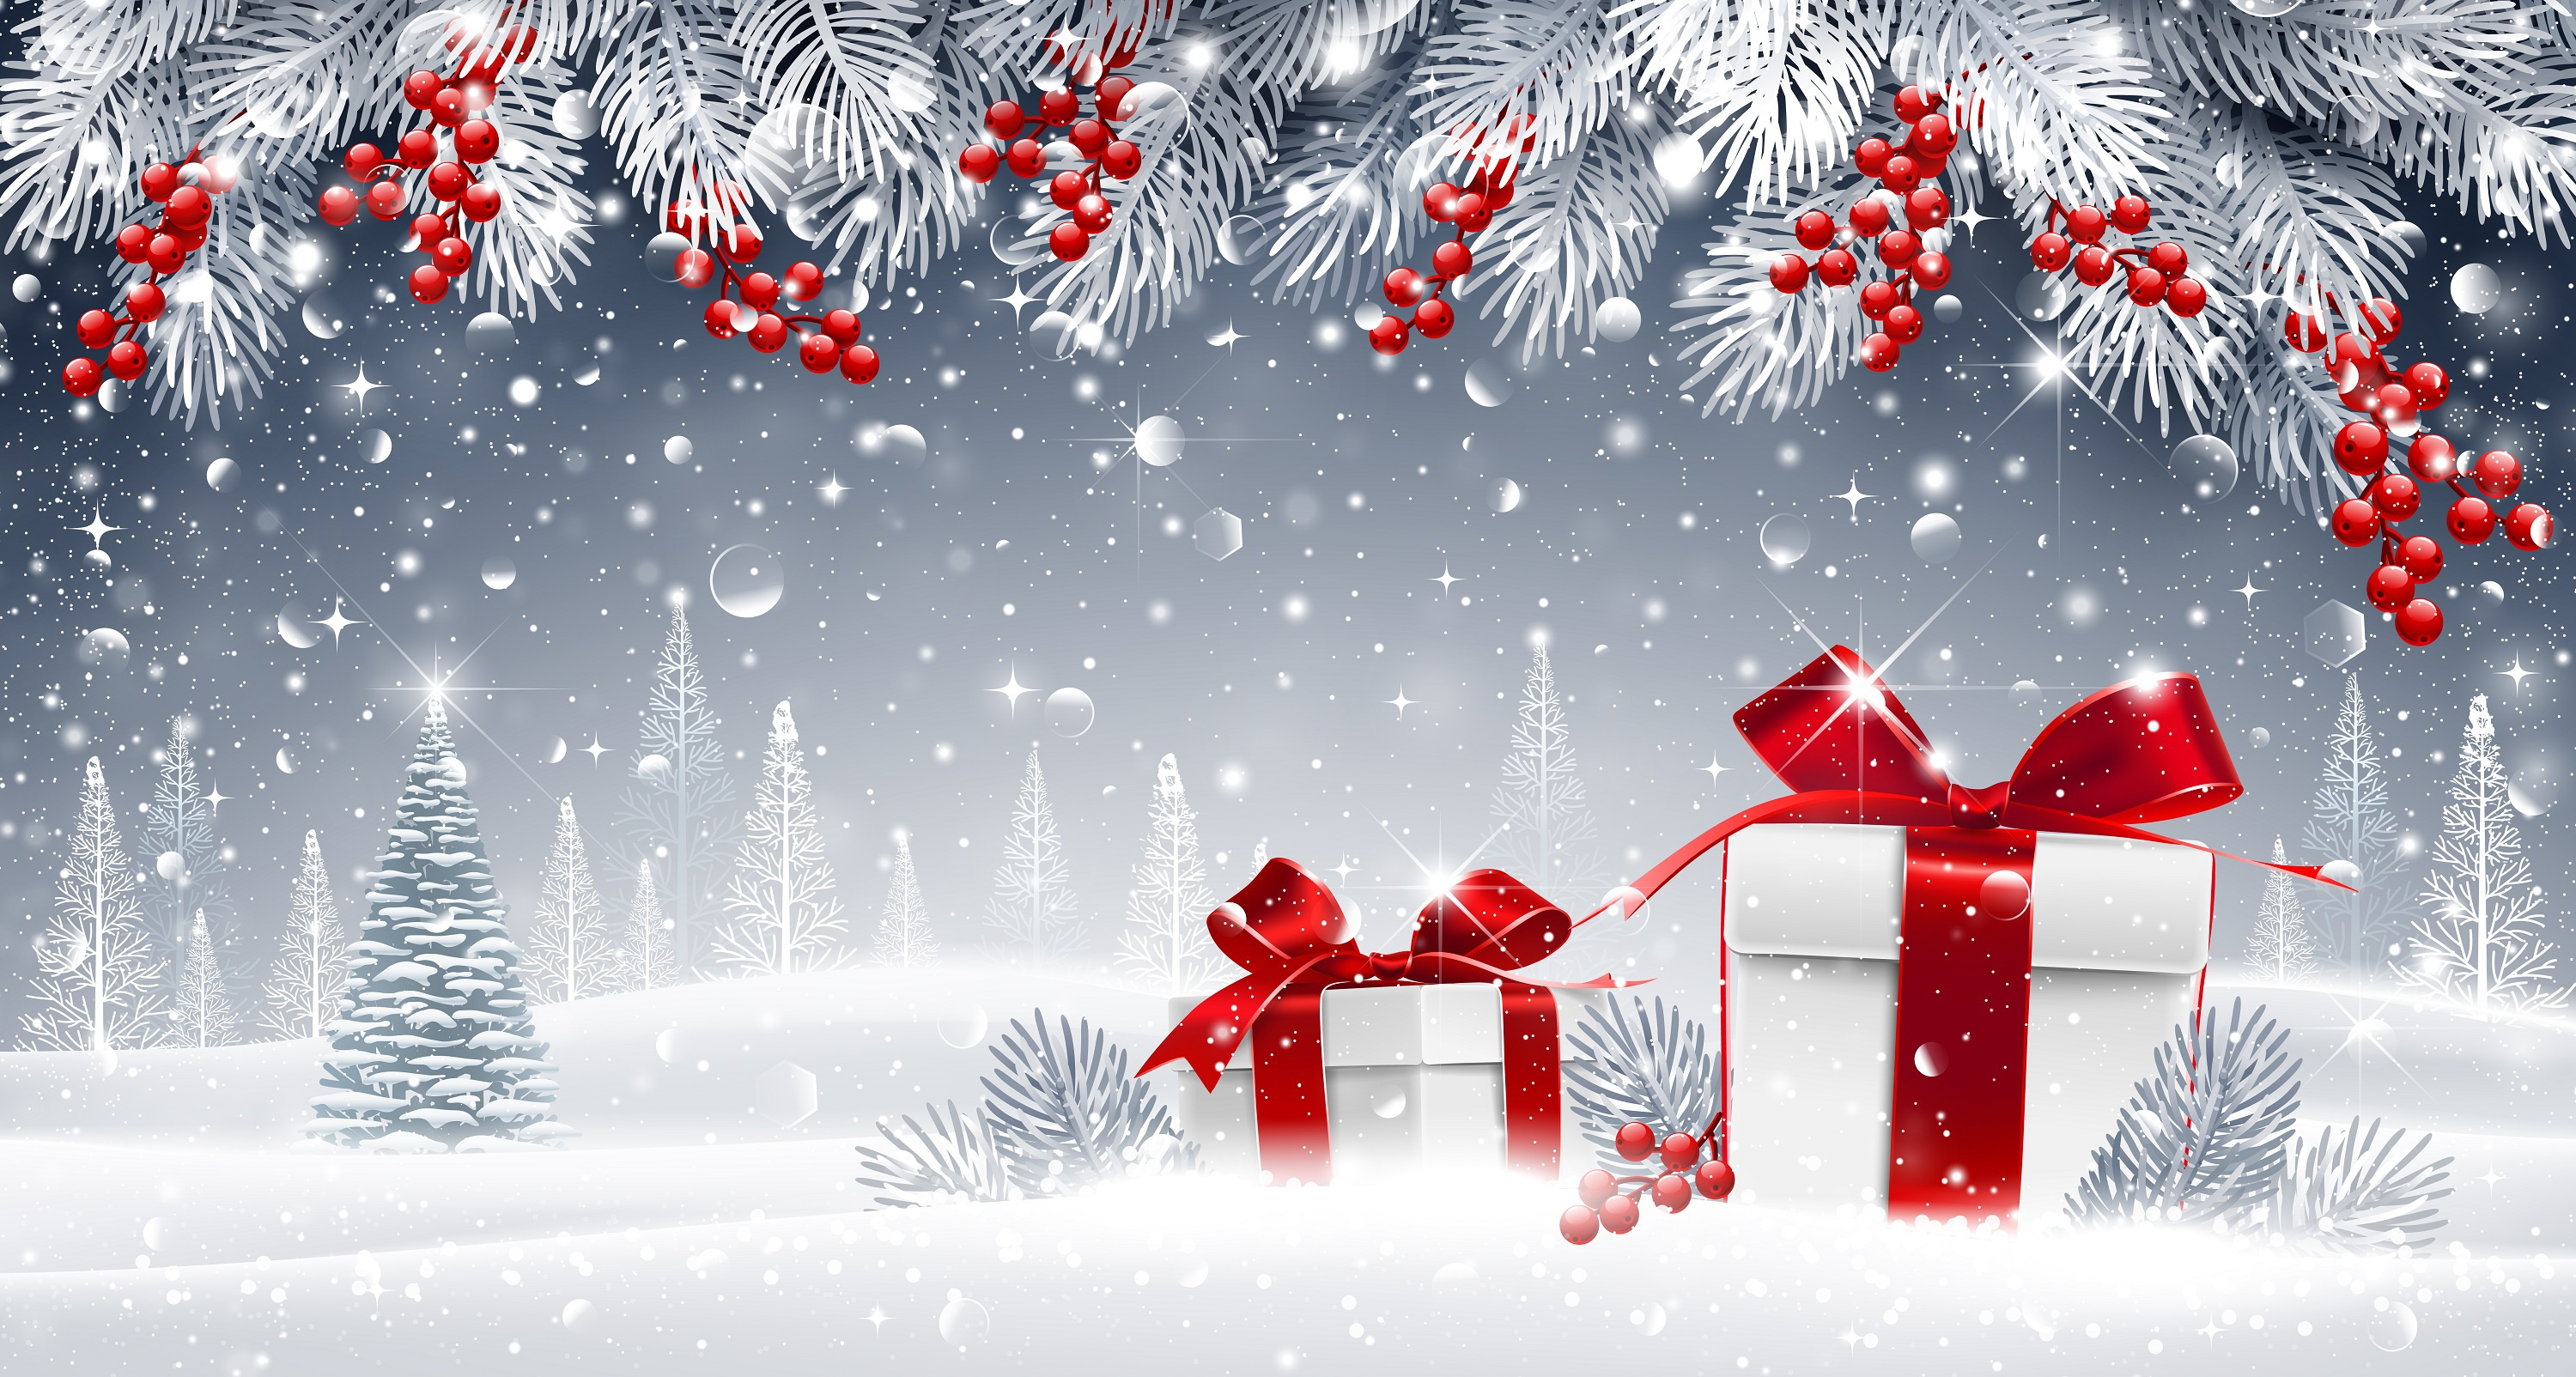 Red Christmas Background With Xmas Tree And Gifts: Christmas HD Wallpaper